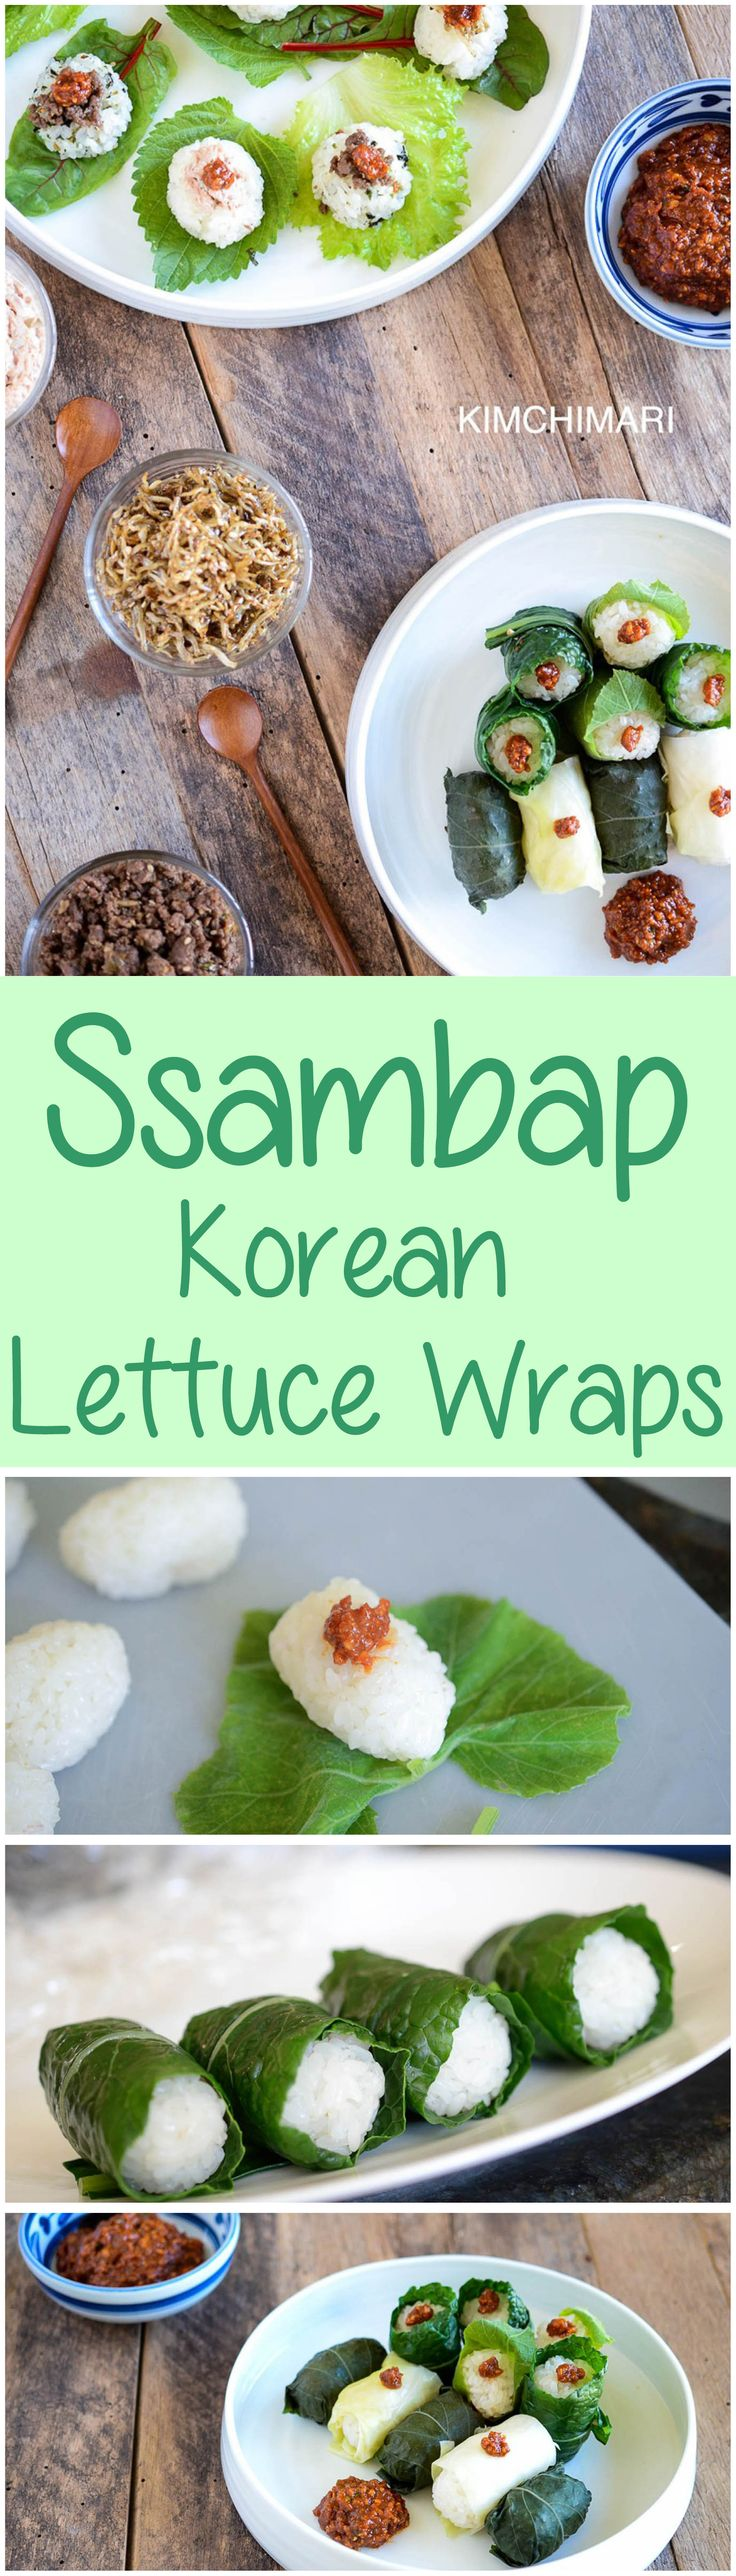 Ssam or ssambap are Korean lettuce wraps, wrapped in greens like perilla, kale and cabbage leaves with surprise fillings inside made of beef, myulchi or tuna. Great for lunch boxes and for parties as